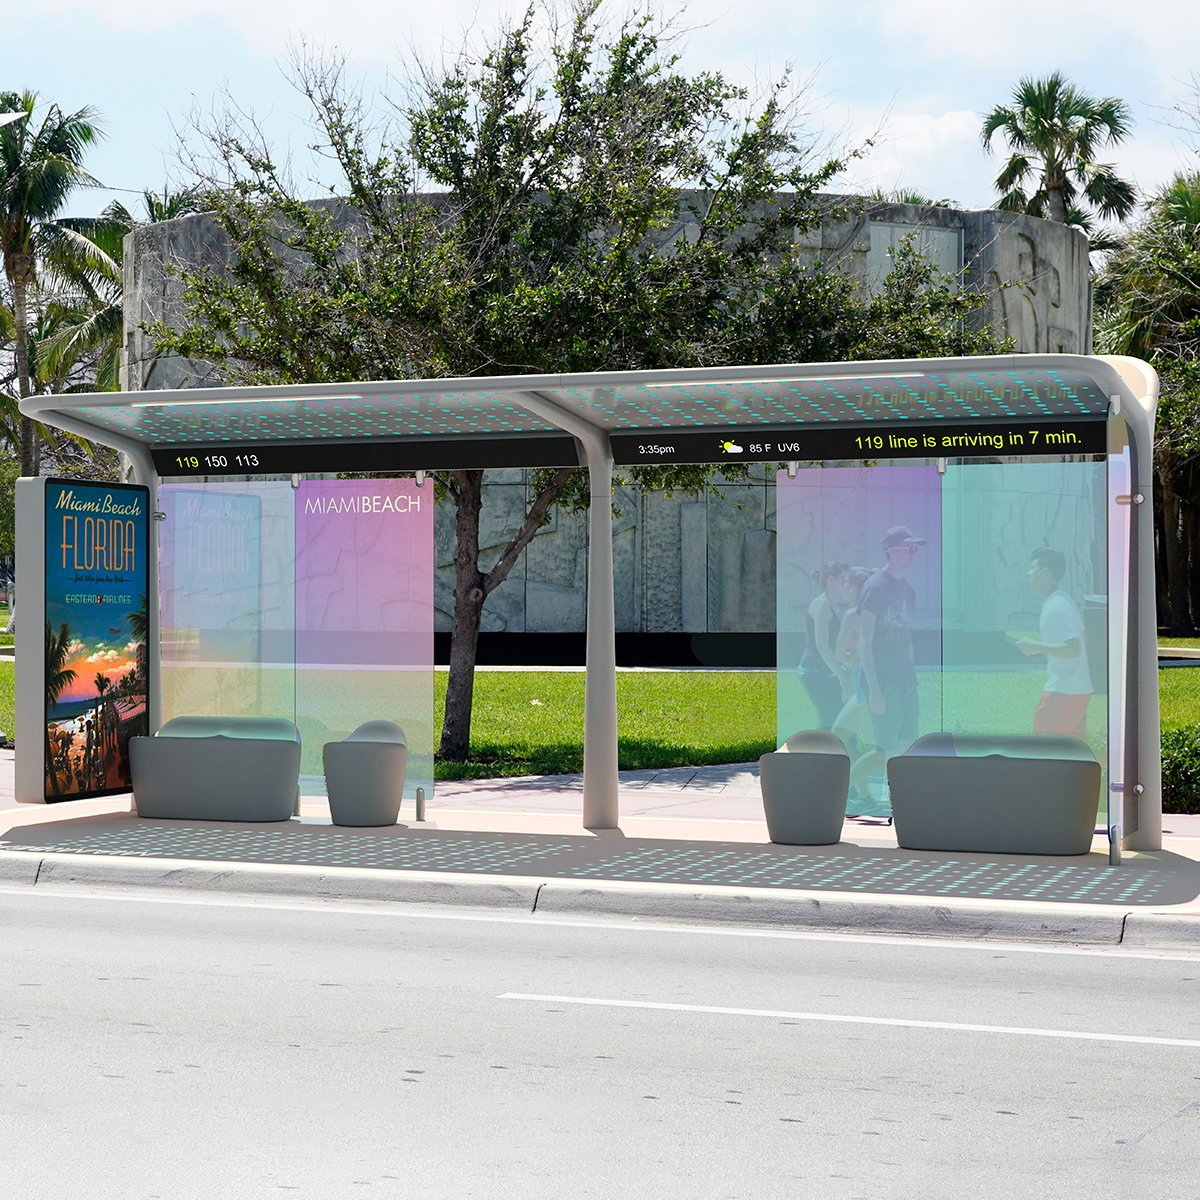 Pininfarina Wins 2019 Red Dot Design Concept Award for Miami Beach's Bus Shelters